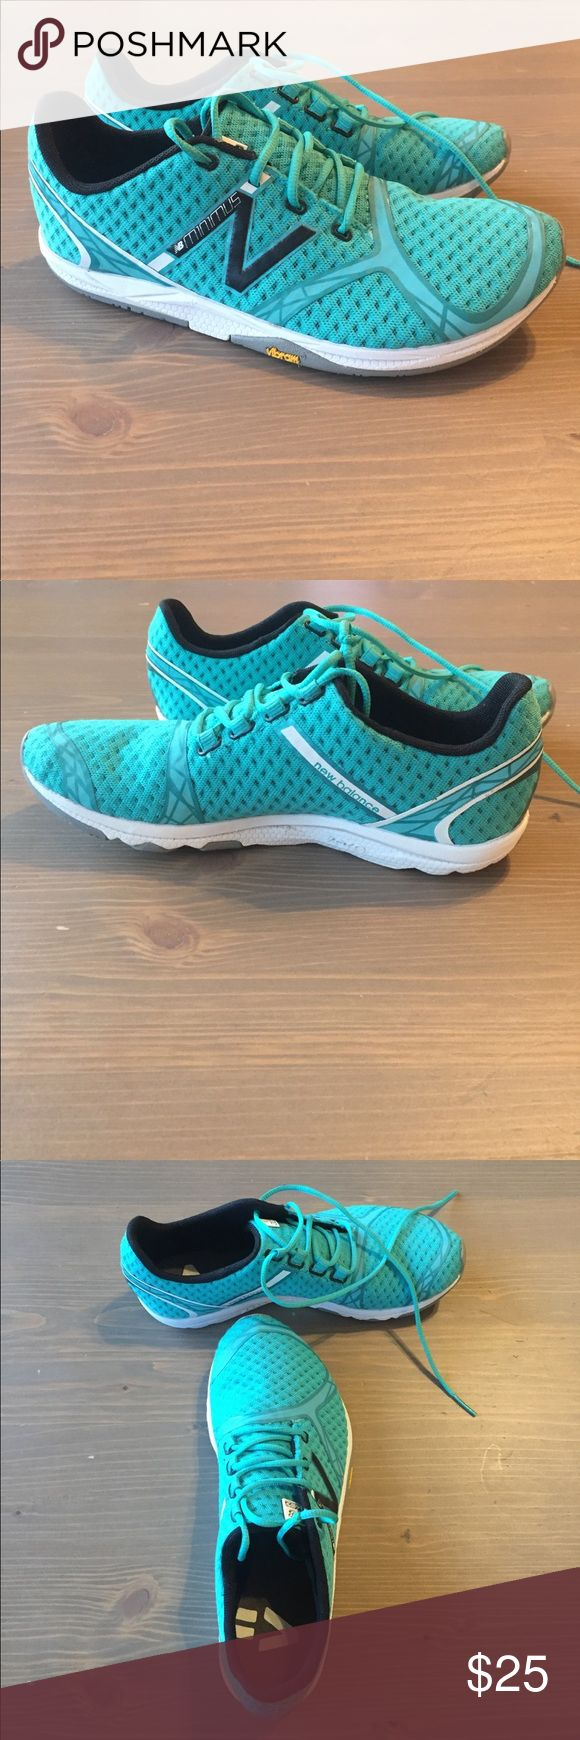 New Balance Minimus Trail Shoe. Trail running shoe with Vibram sole.  Very light weight!  Worn 2 times.  Excellent used condition.  Color is a teal/blue-green. New Balance Shoes Sneakers